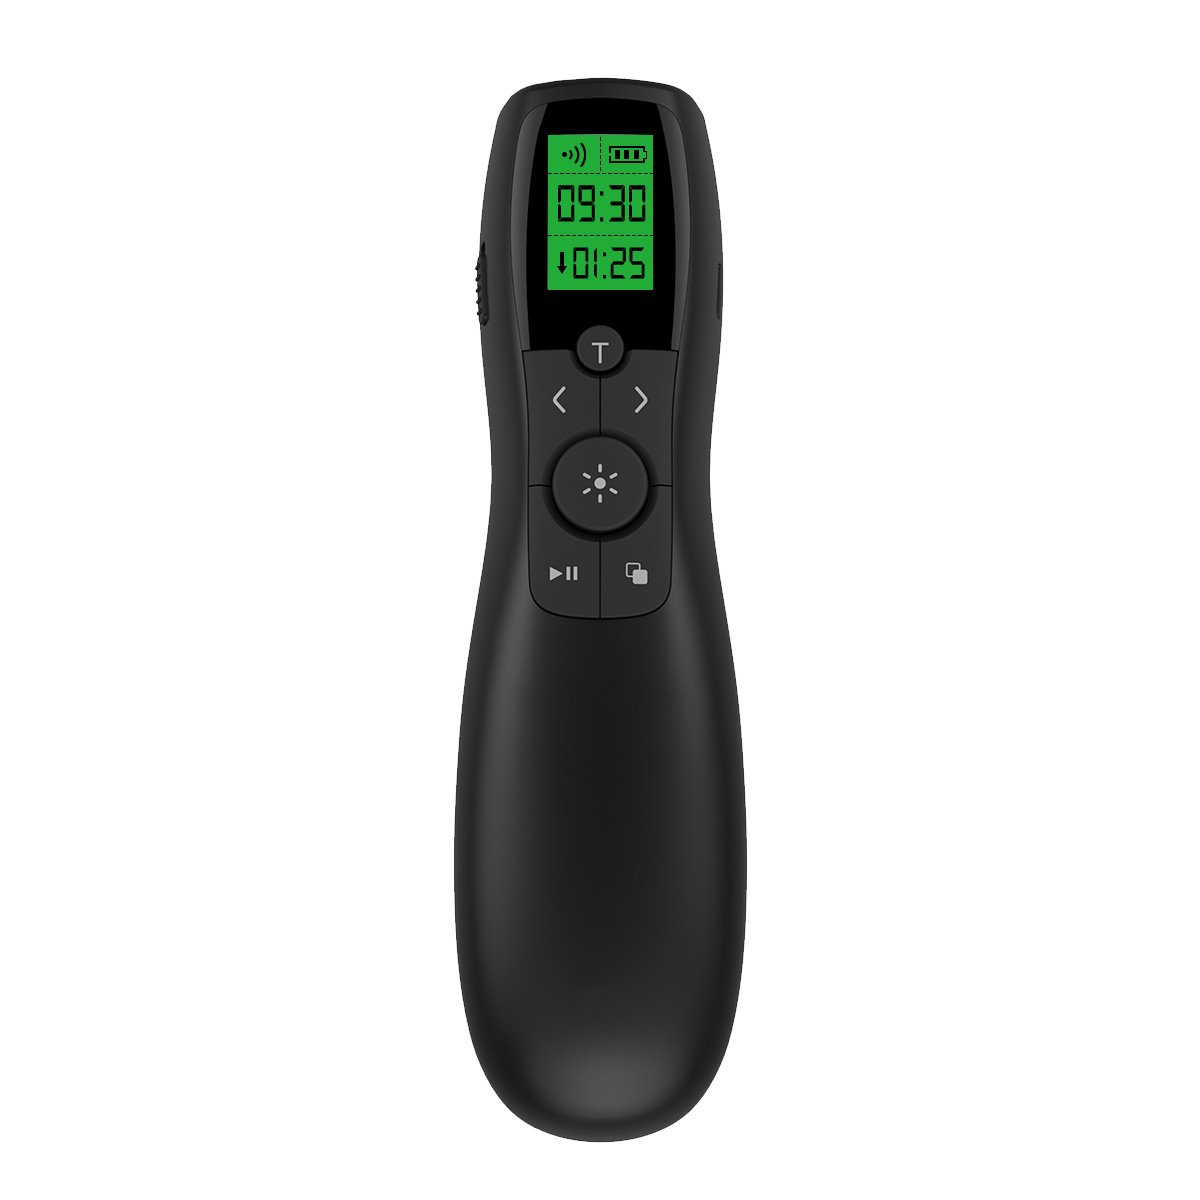 Presentation Remote Rechargeable Wireless Presenter LCD Display, 2.4GHz Wireless USB Powerpoint Clicker Remote Control